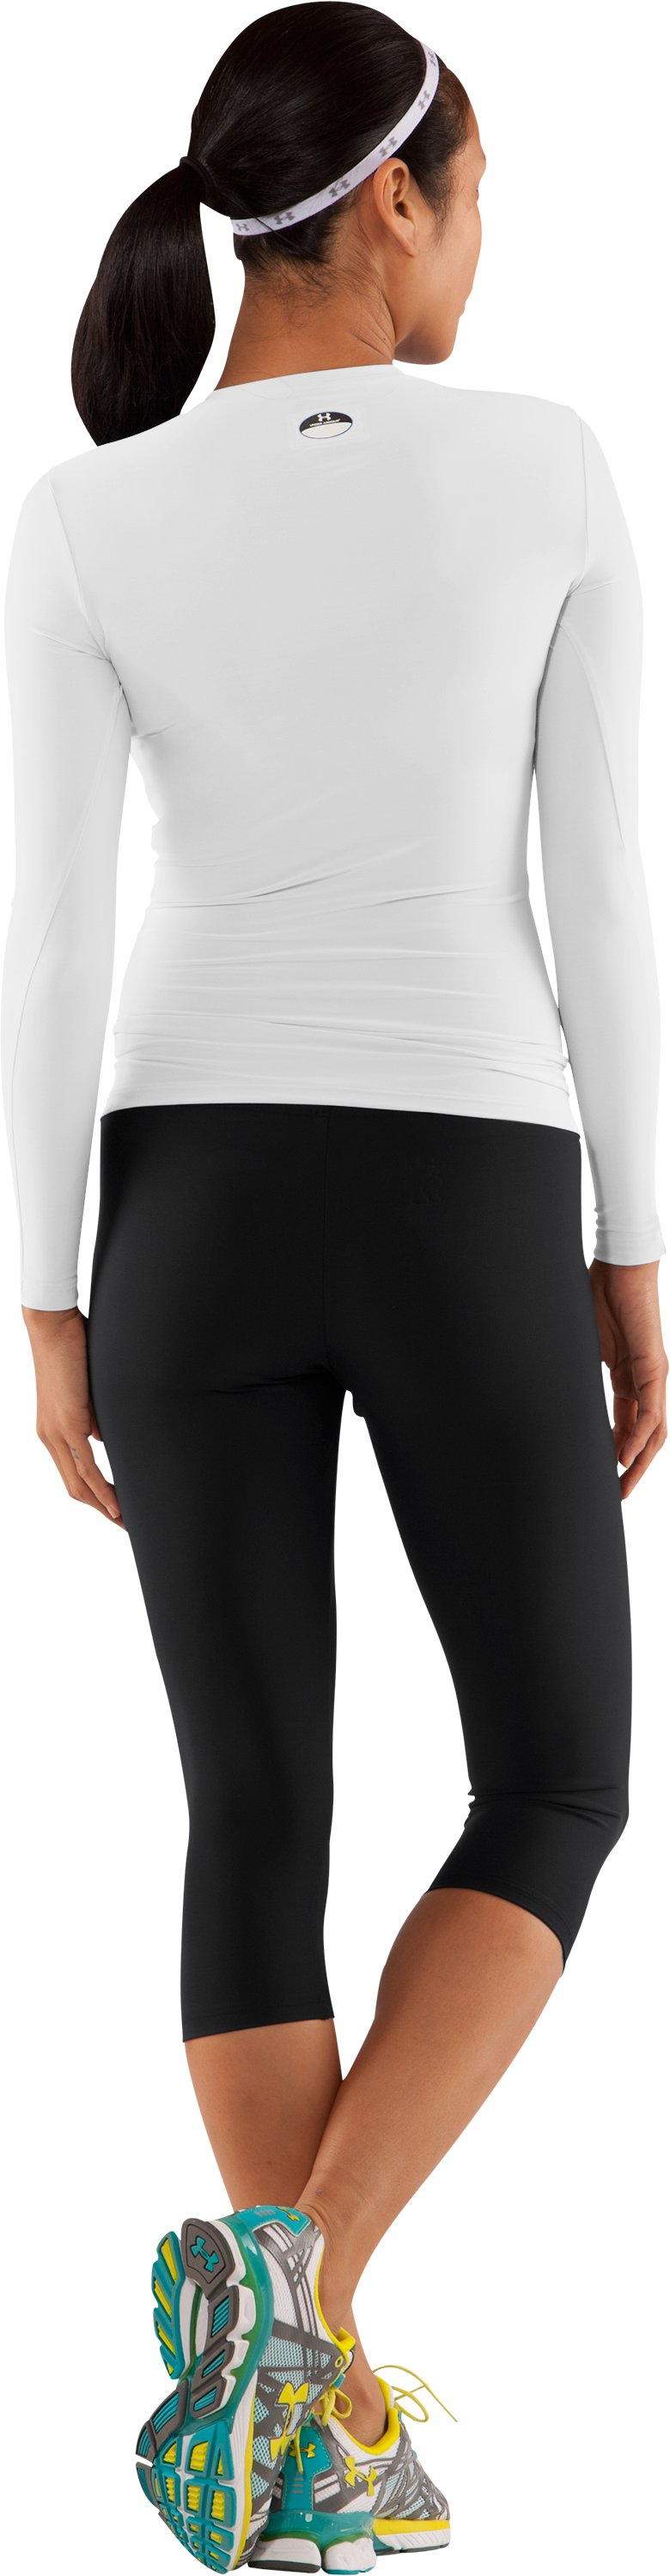 Women's HeatGear® Long Sleeve Compression T-Shirt, White, Back